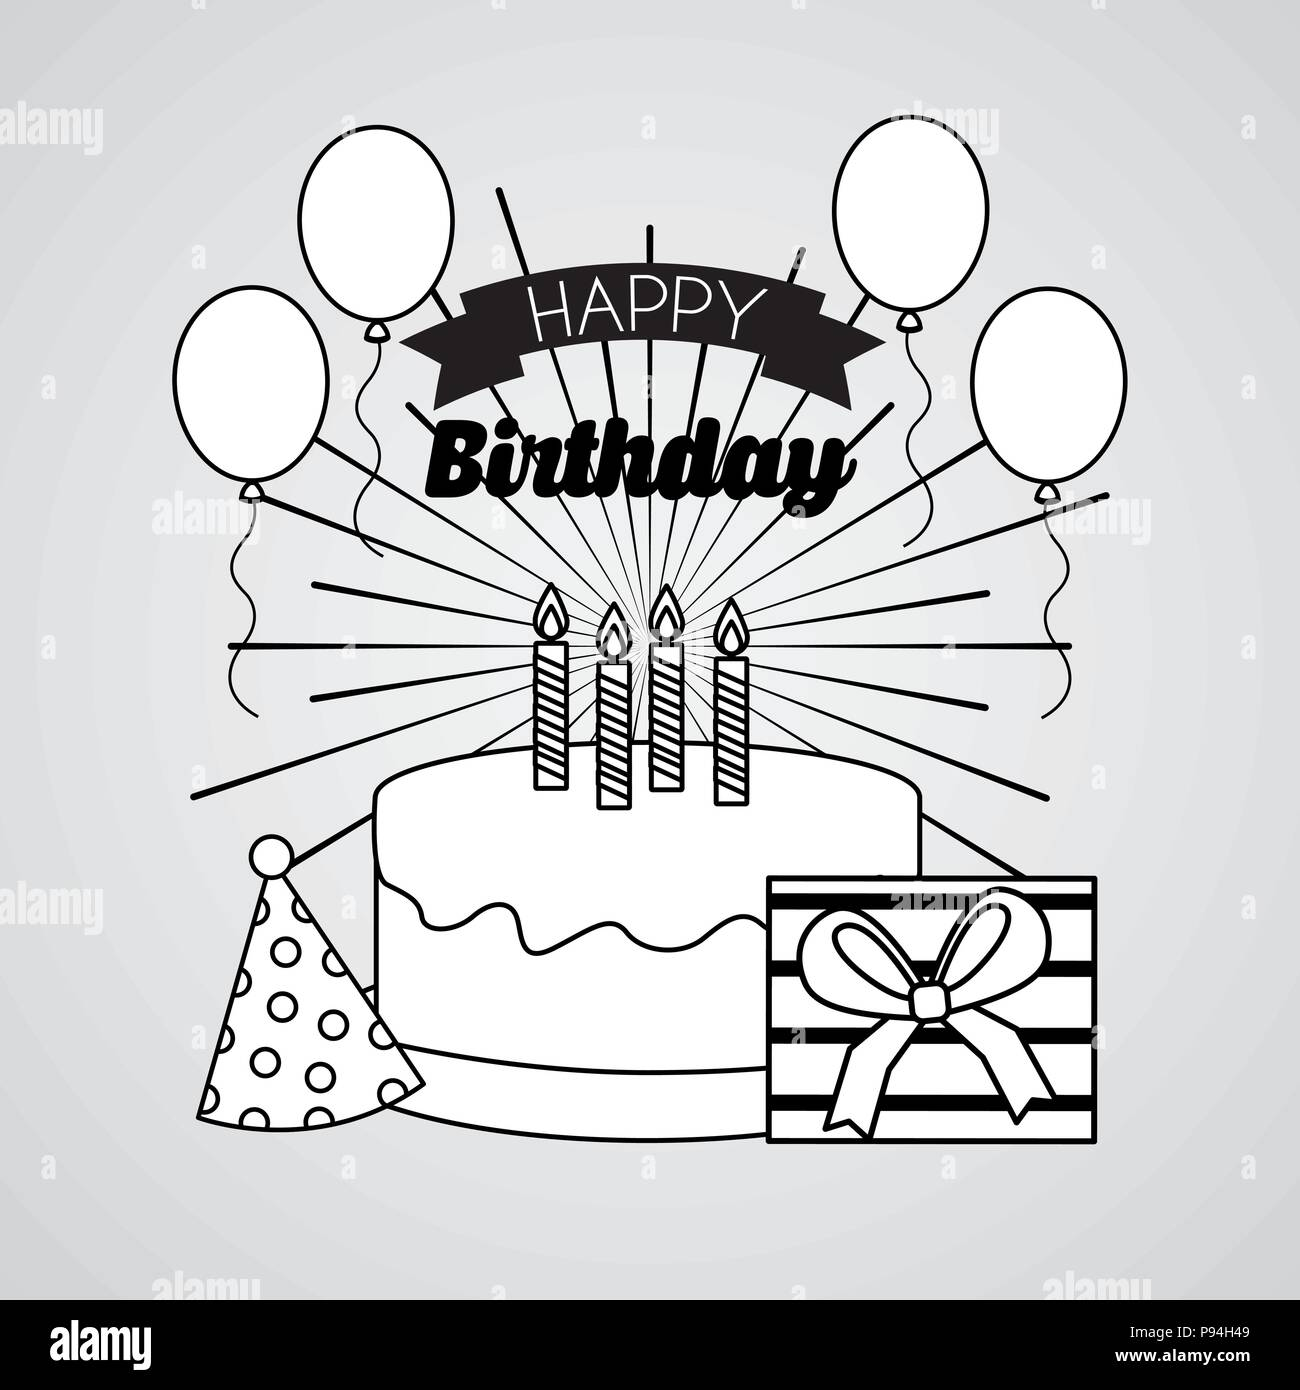 Happy Birthday Card Draw Geburt Ribbon Luftballons Geschenk Box Vector Illustration